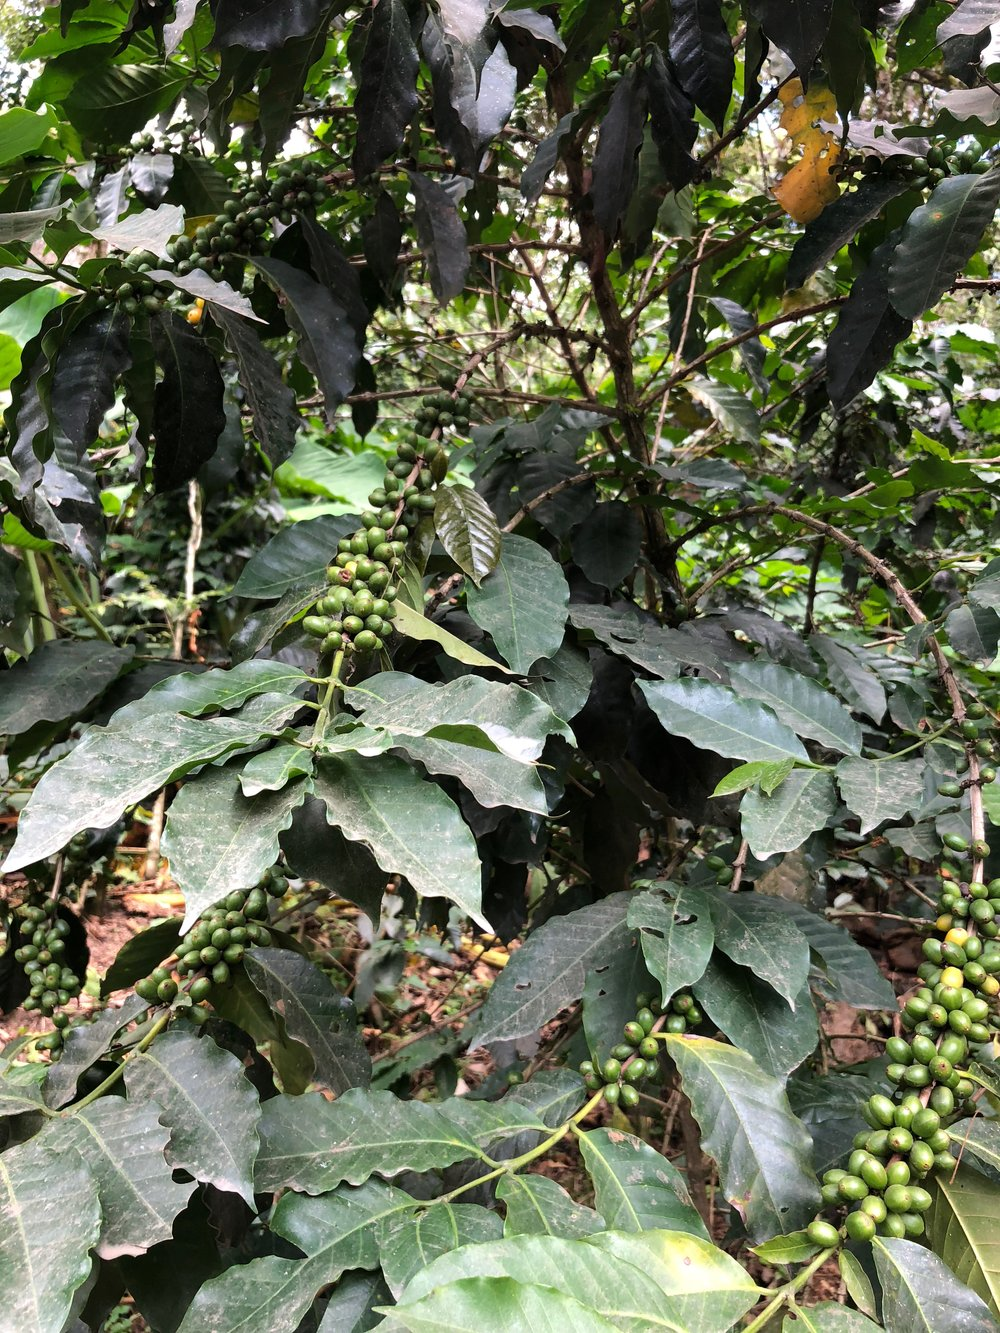 Coffee tree or bush